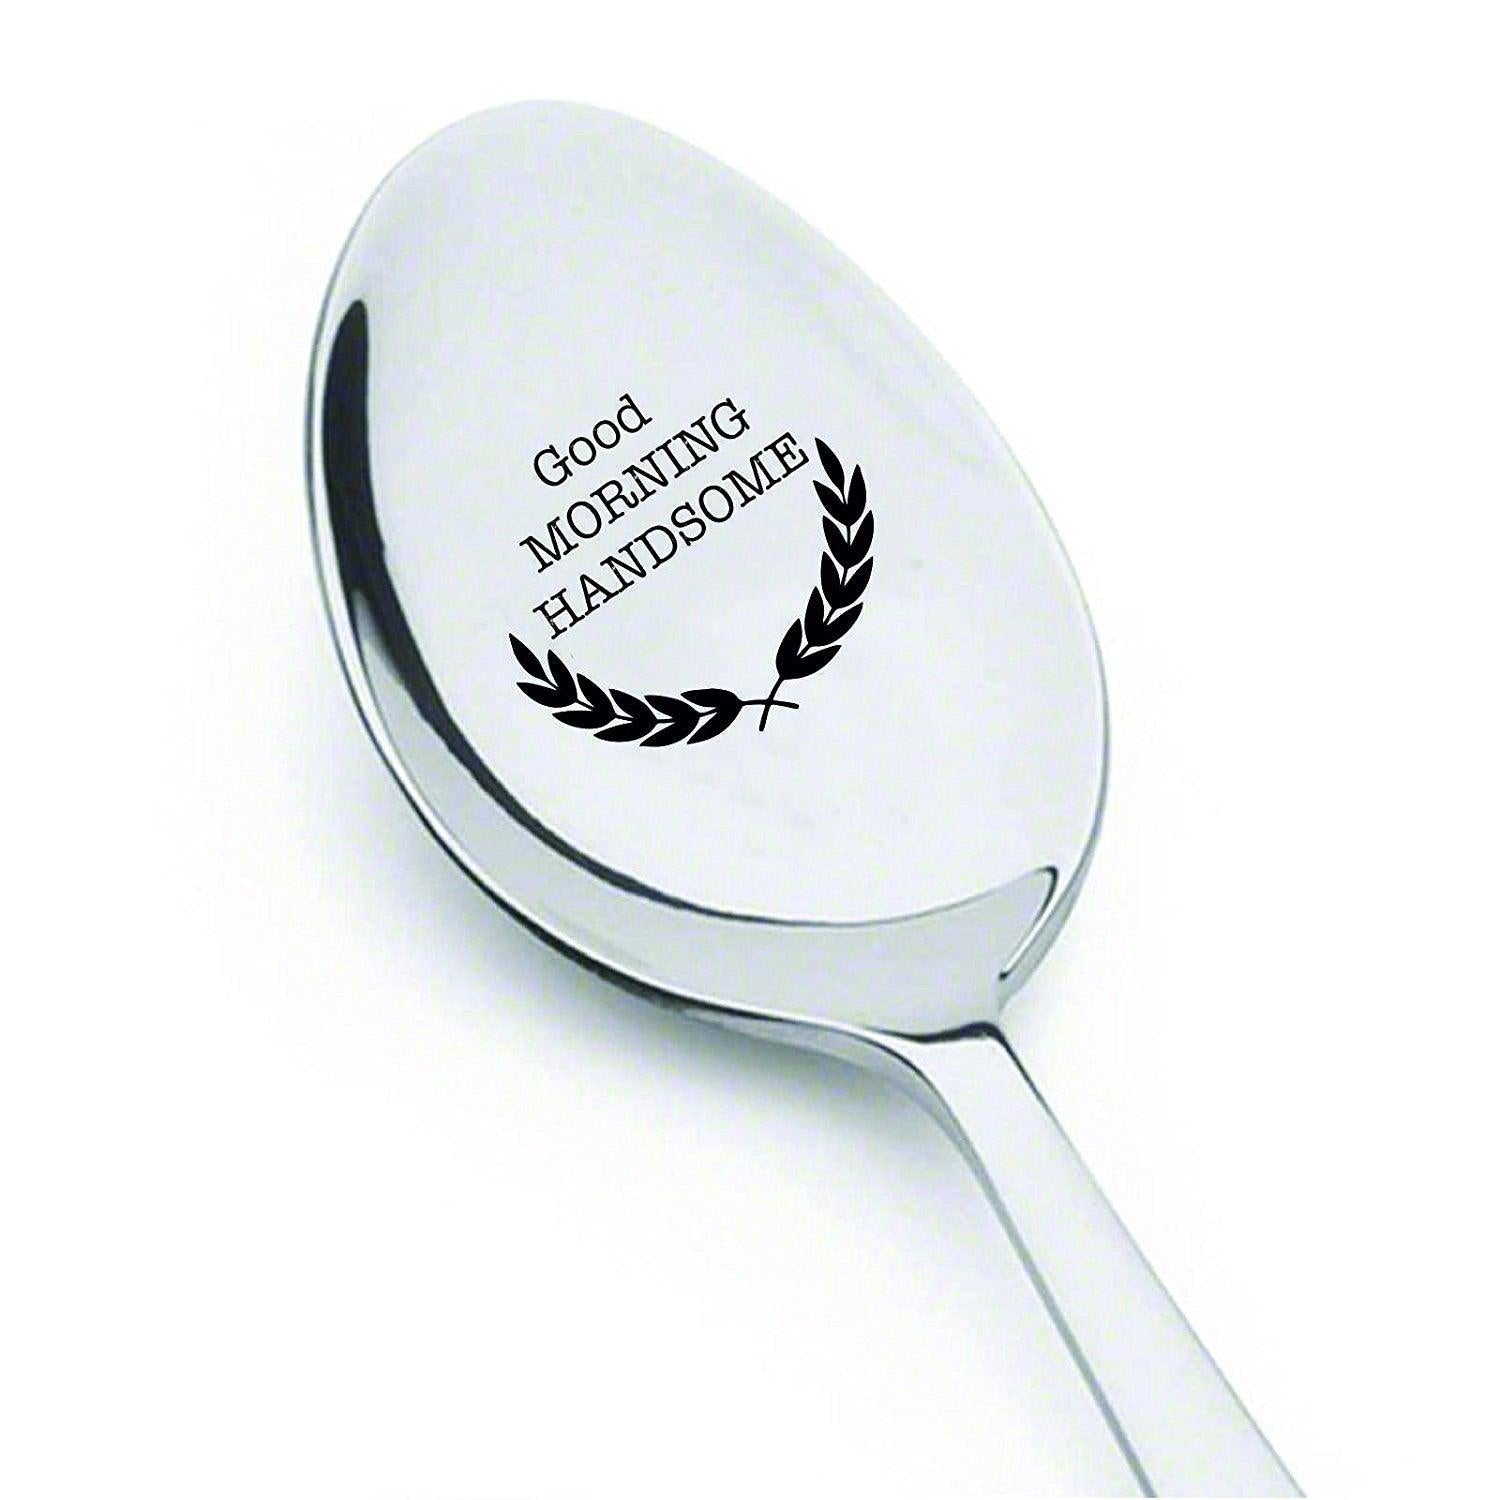 Good morning Handsome - Engraved Coffee spoon - Silverware Spoon - BOSTON CREATIVE COMPANY